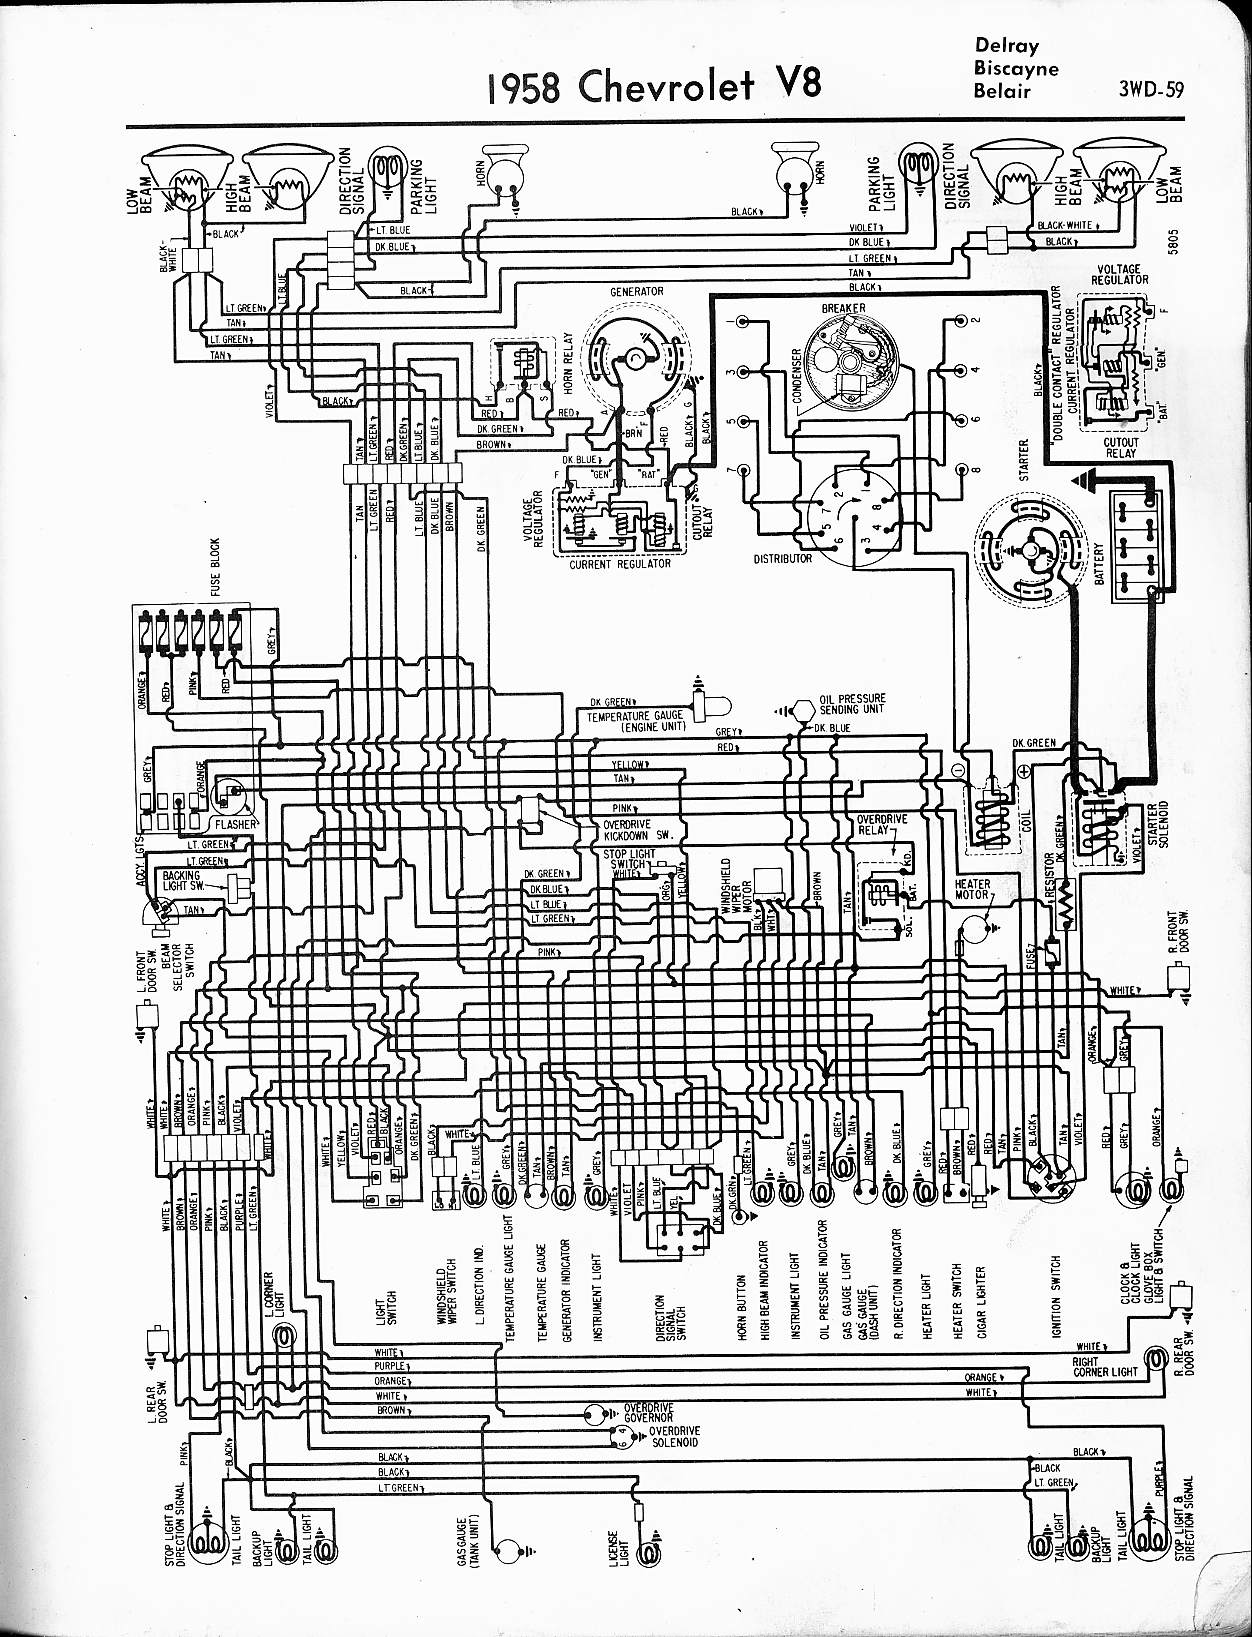 1959 Impala Wiring Diagram Guide And Troubleshooting Of 1963 Diagrams 57 65 Chevy Rh Oldcarmanualproject Com 1966